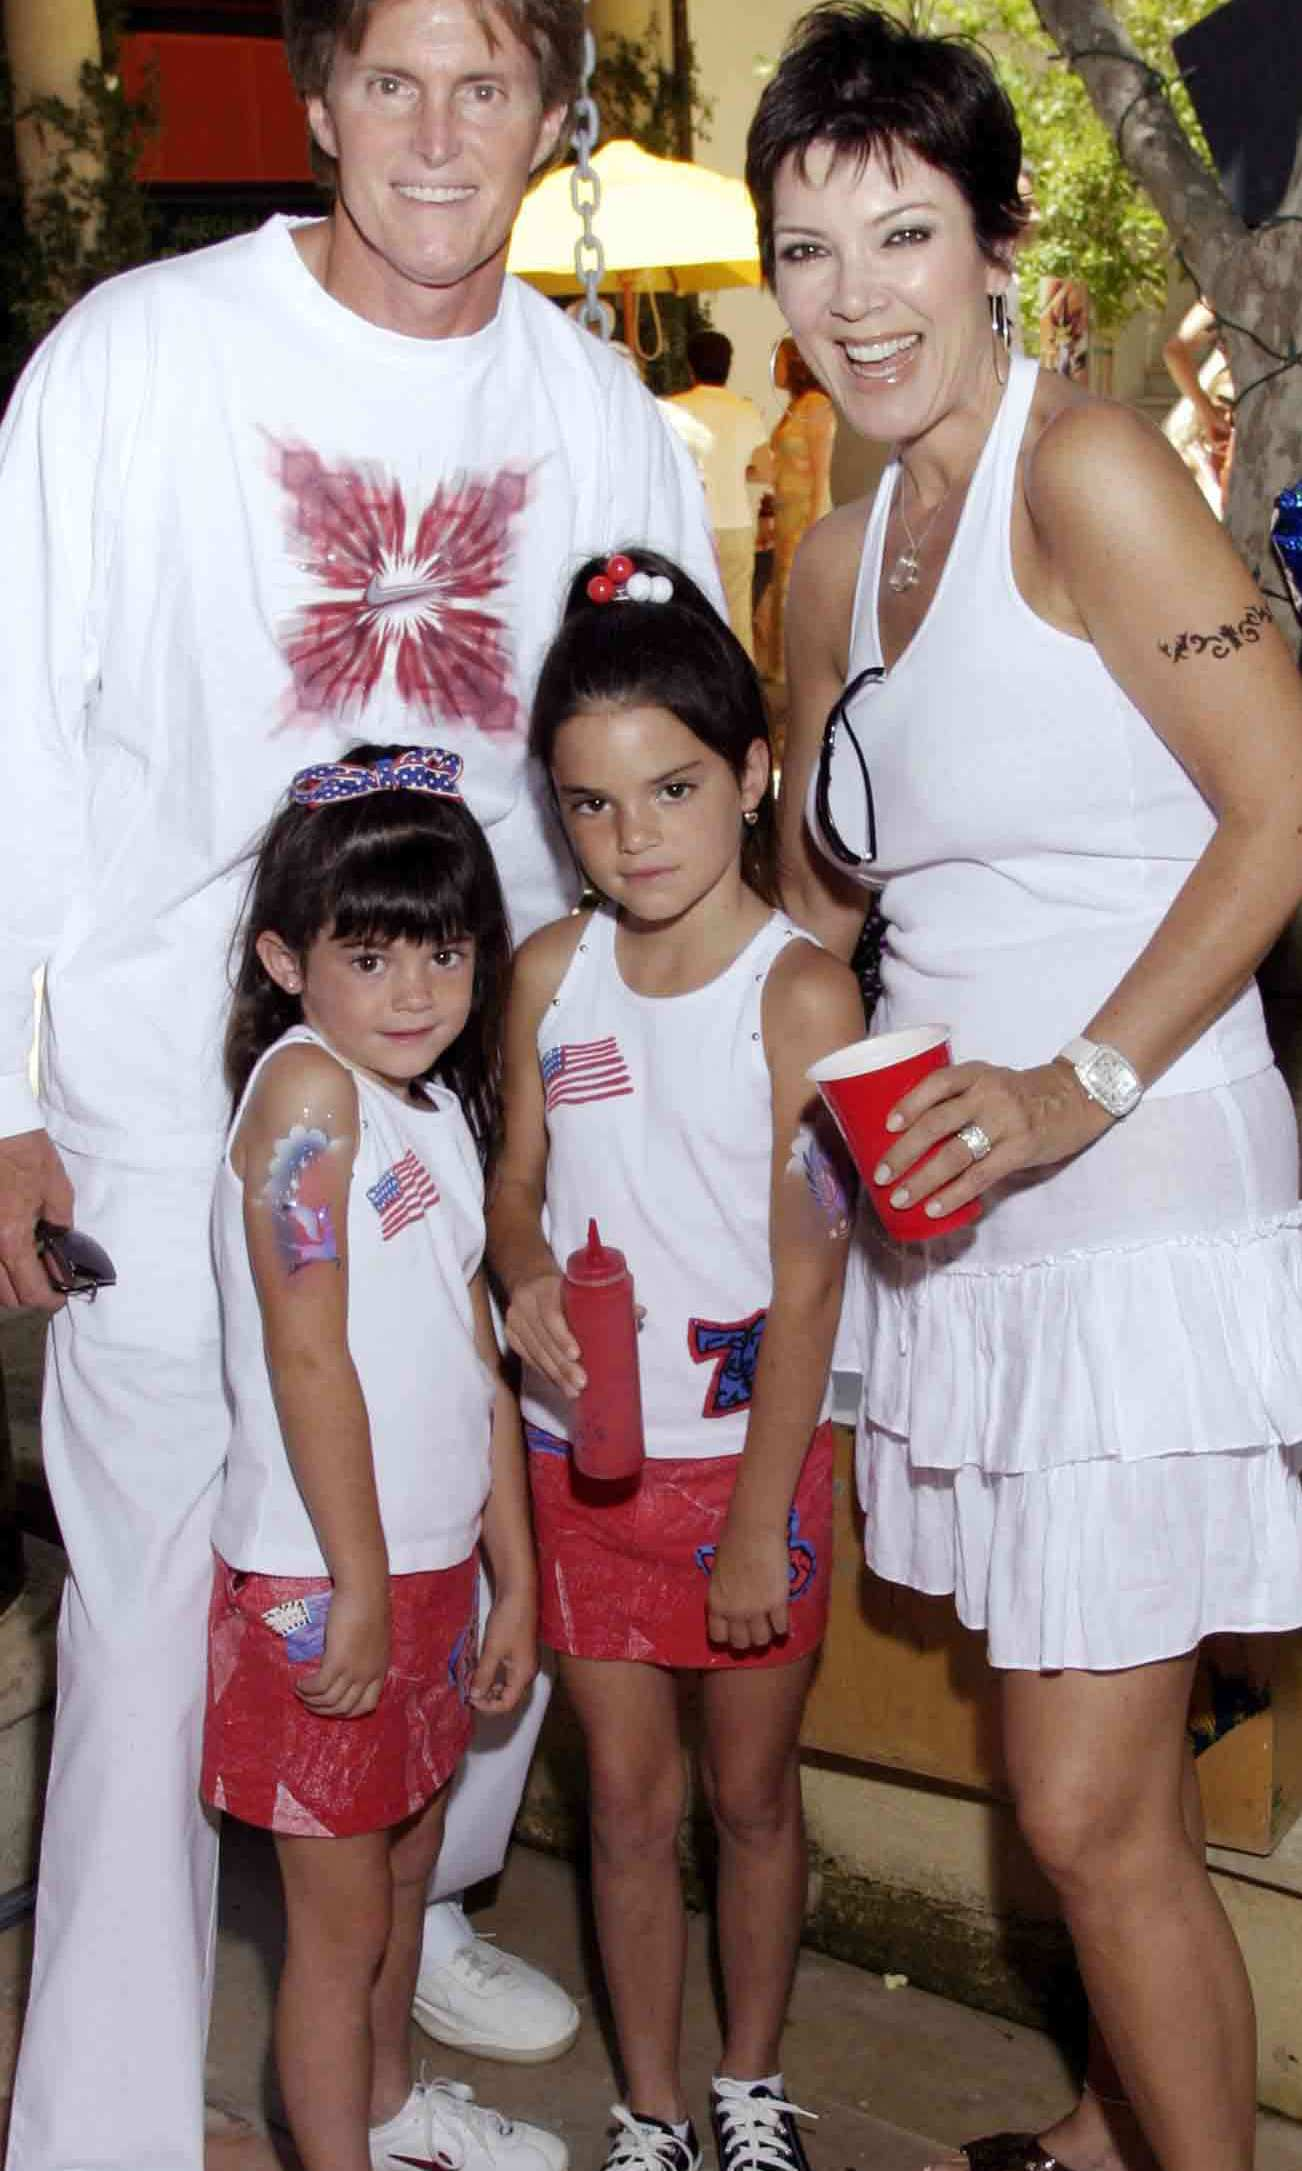 In 2003, Kylie accompanied her parents and her sister to a birthday party. 